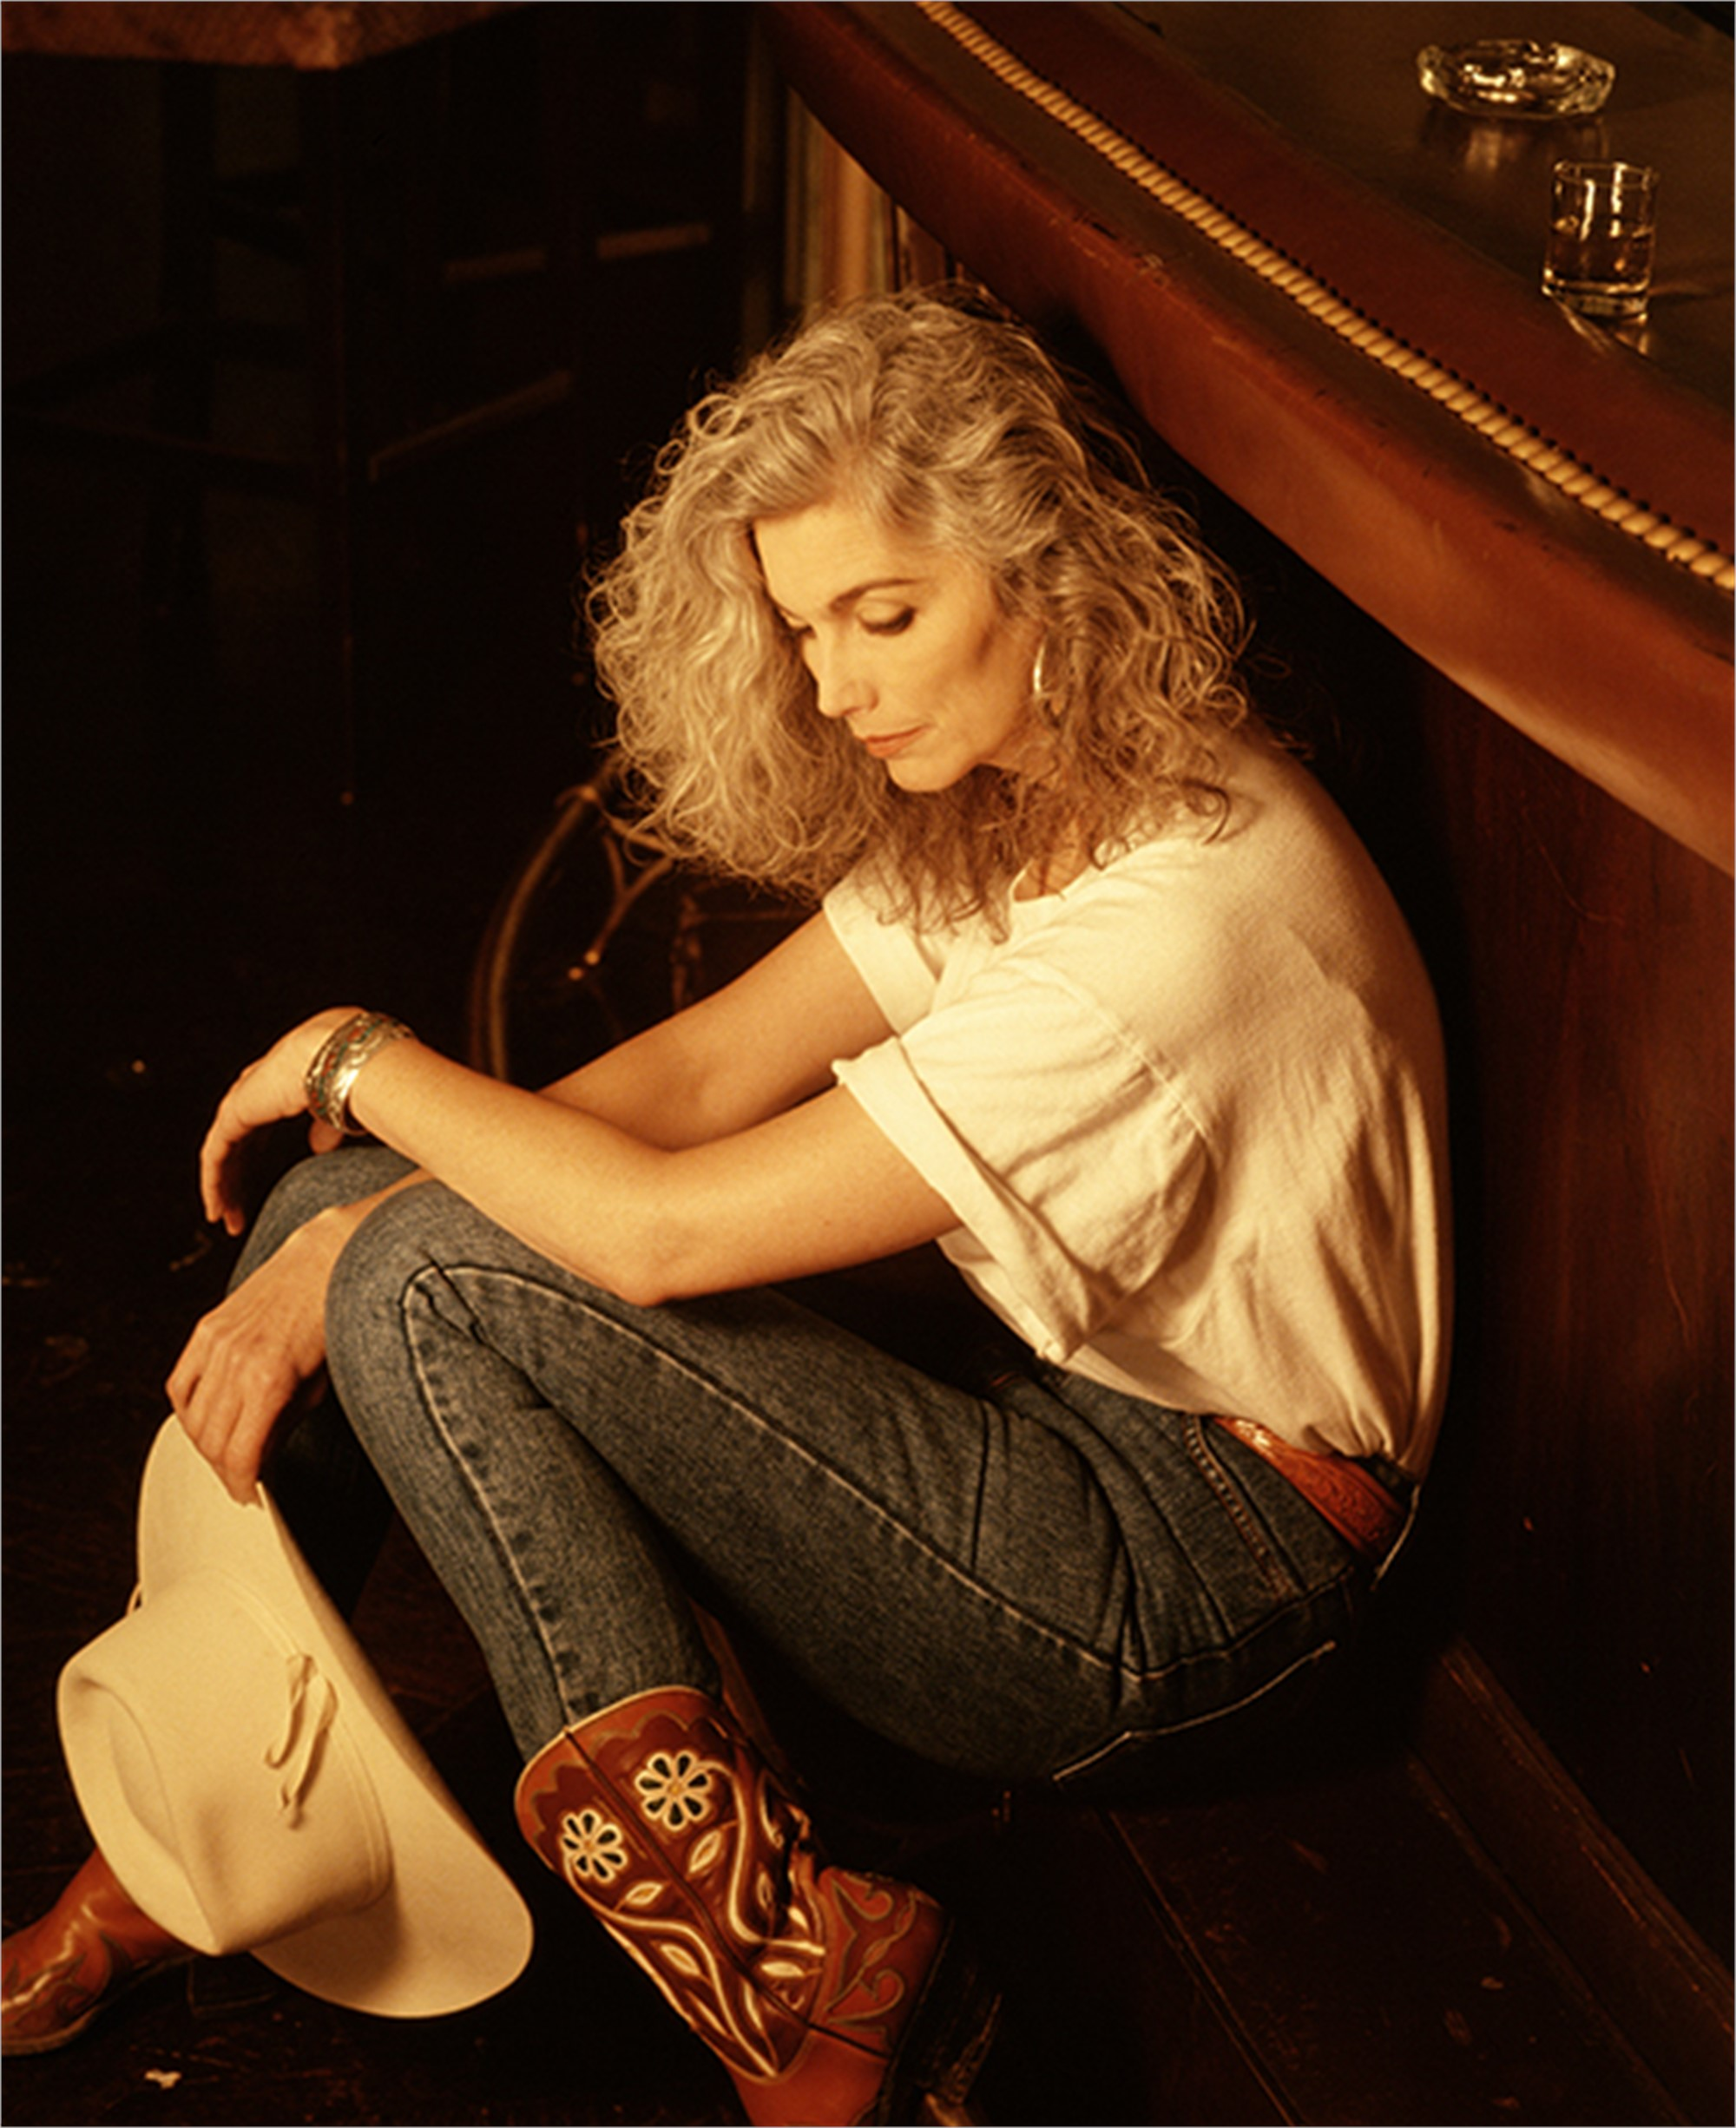 93067 Emmylou Harris Sitting Against Bar Color by Timothy White